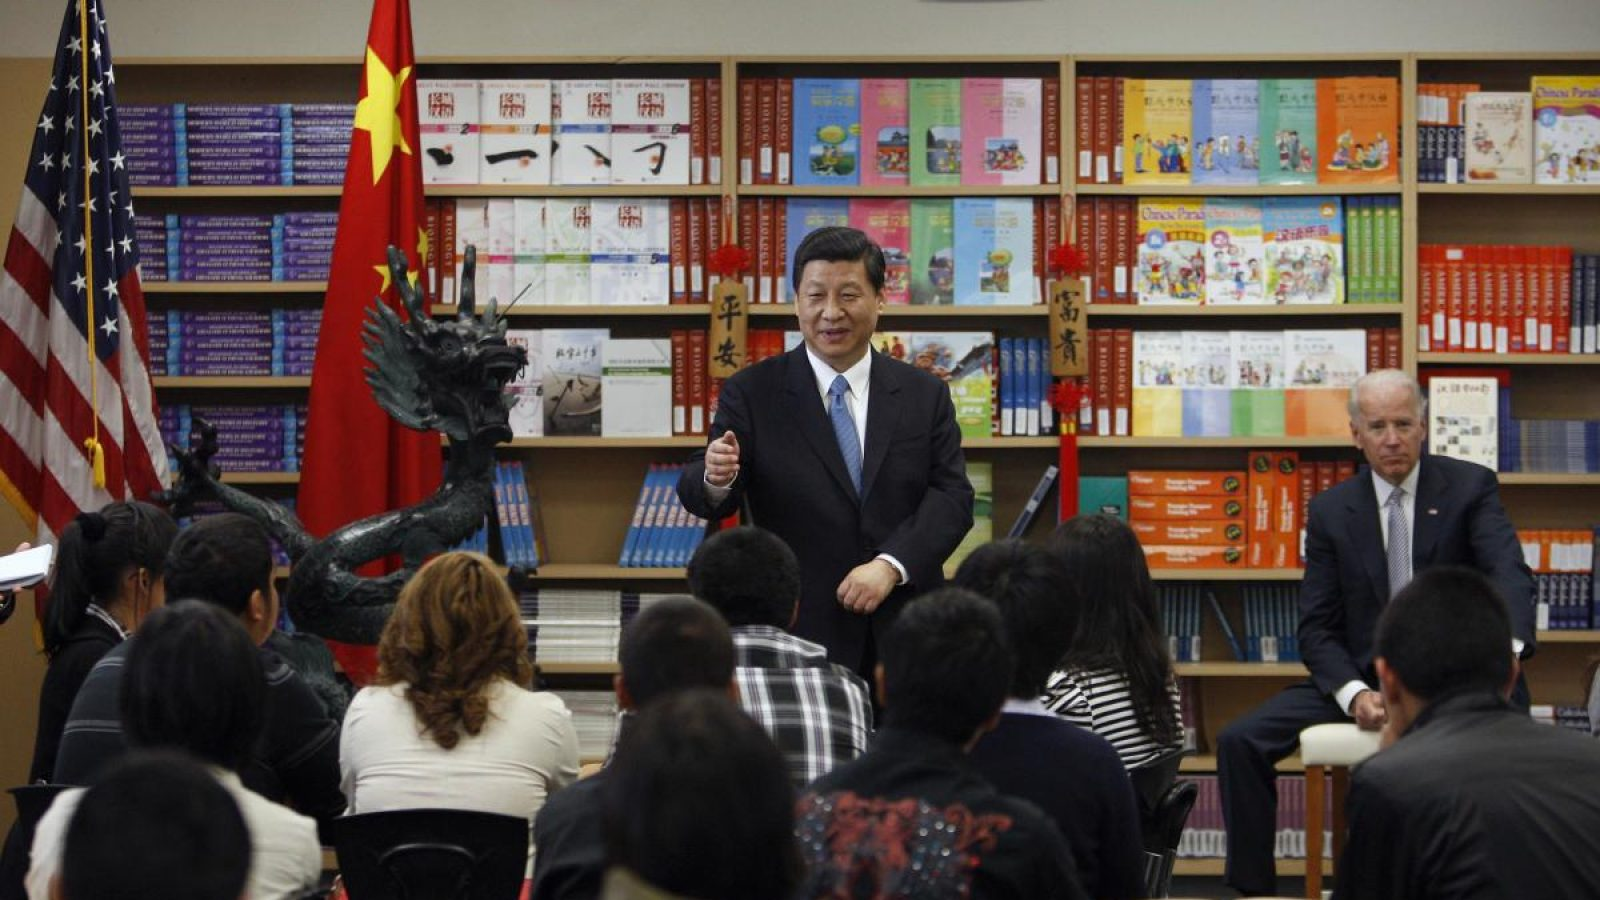 Xi Jinping points at a classroom of students while a sitting Joe Biden looks on in the background